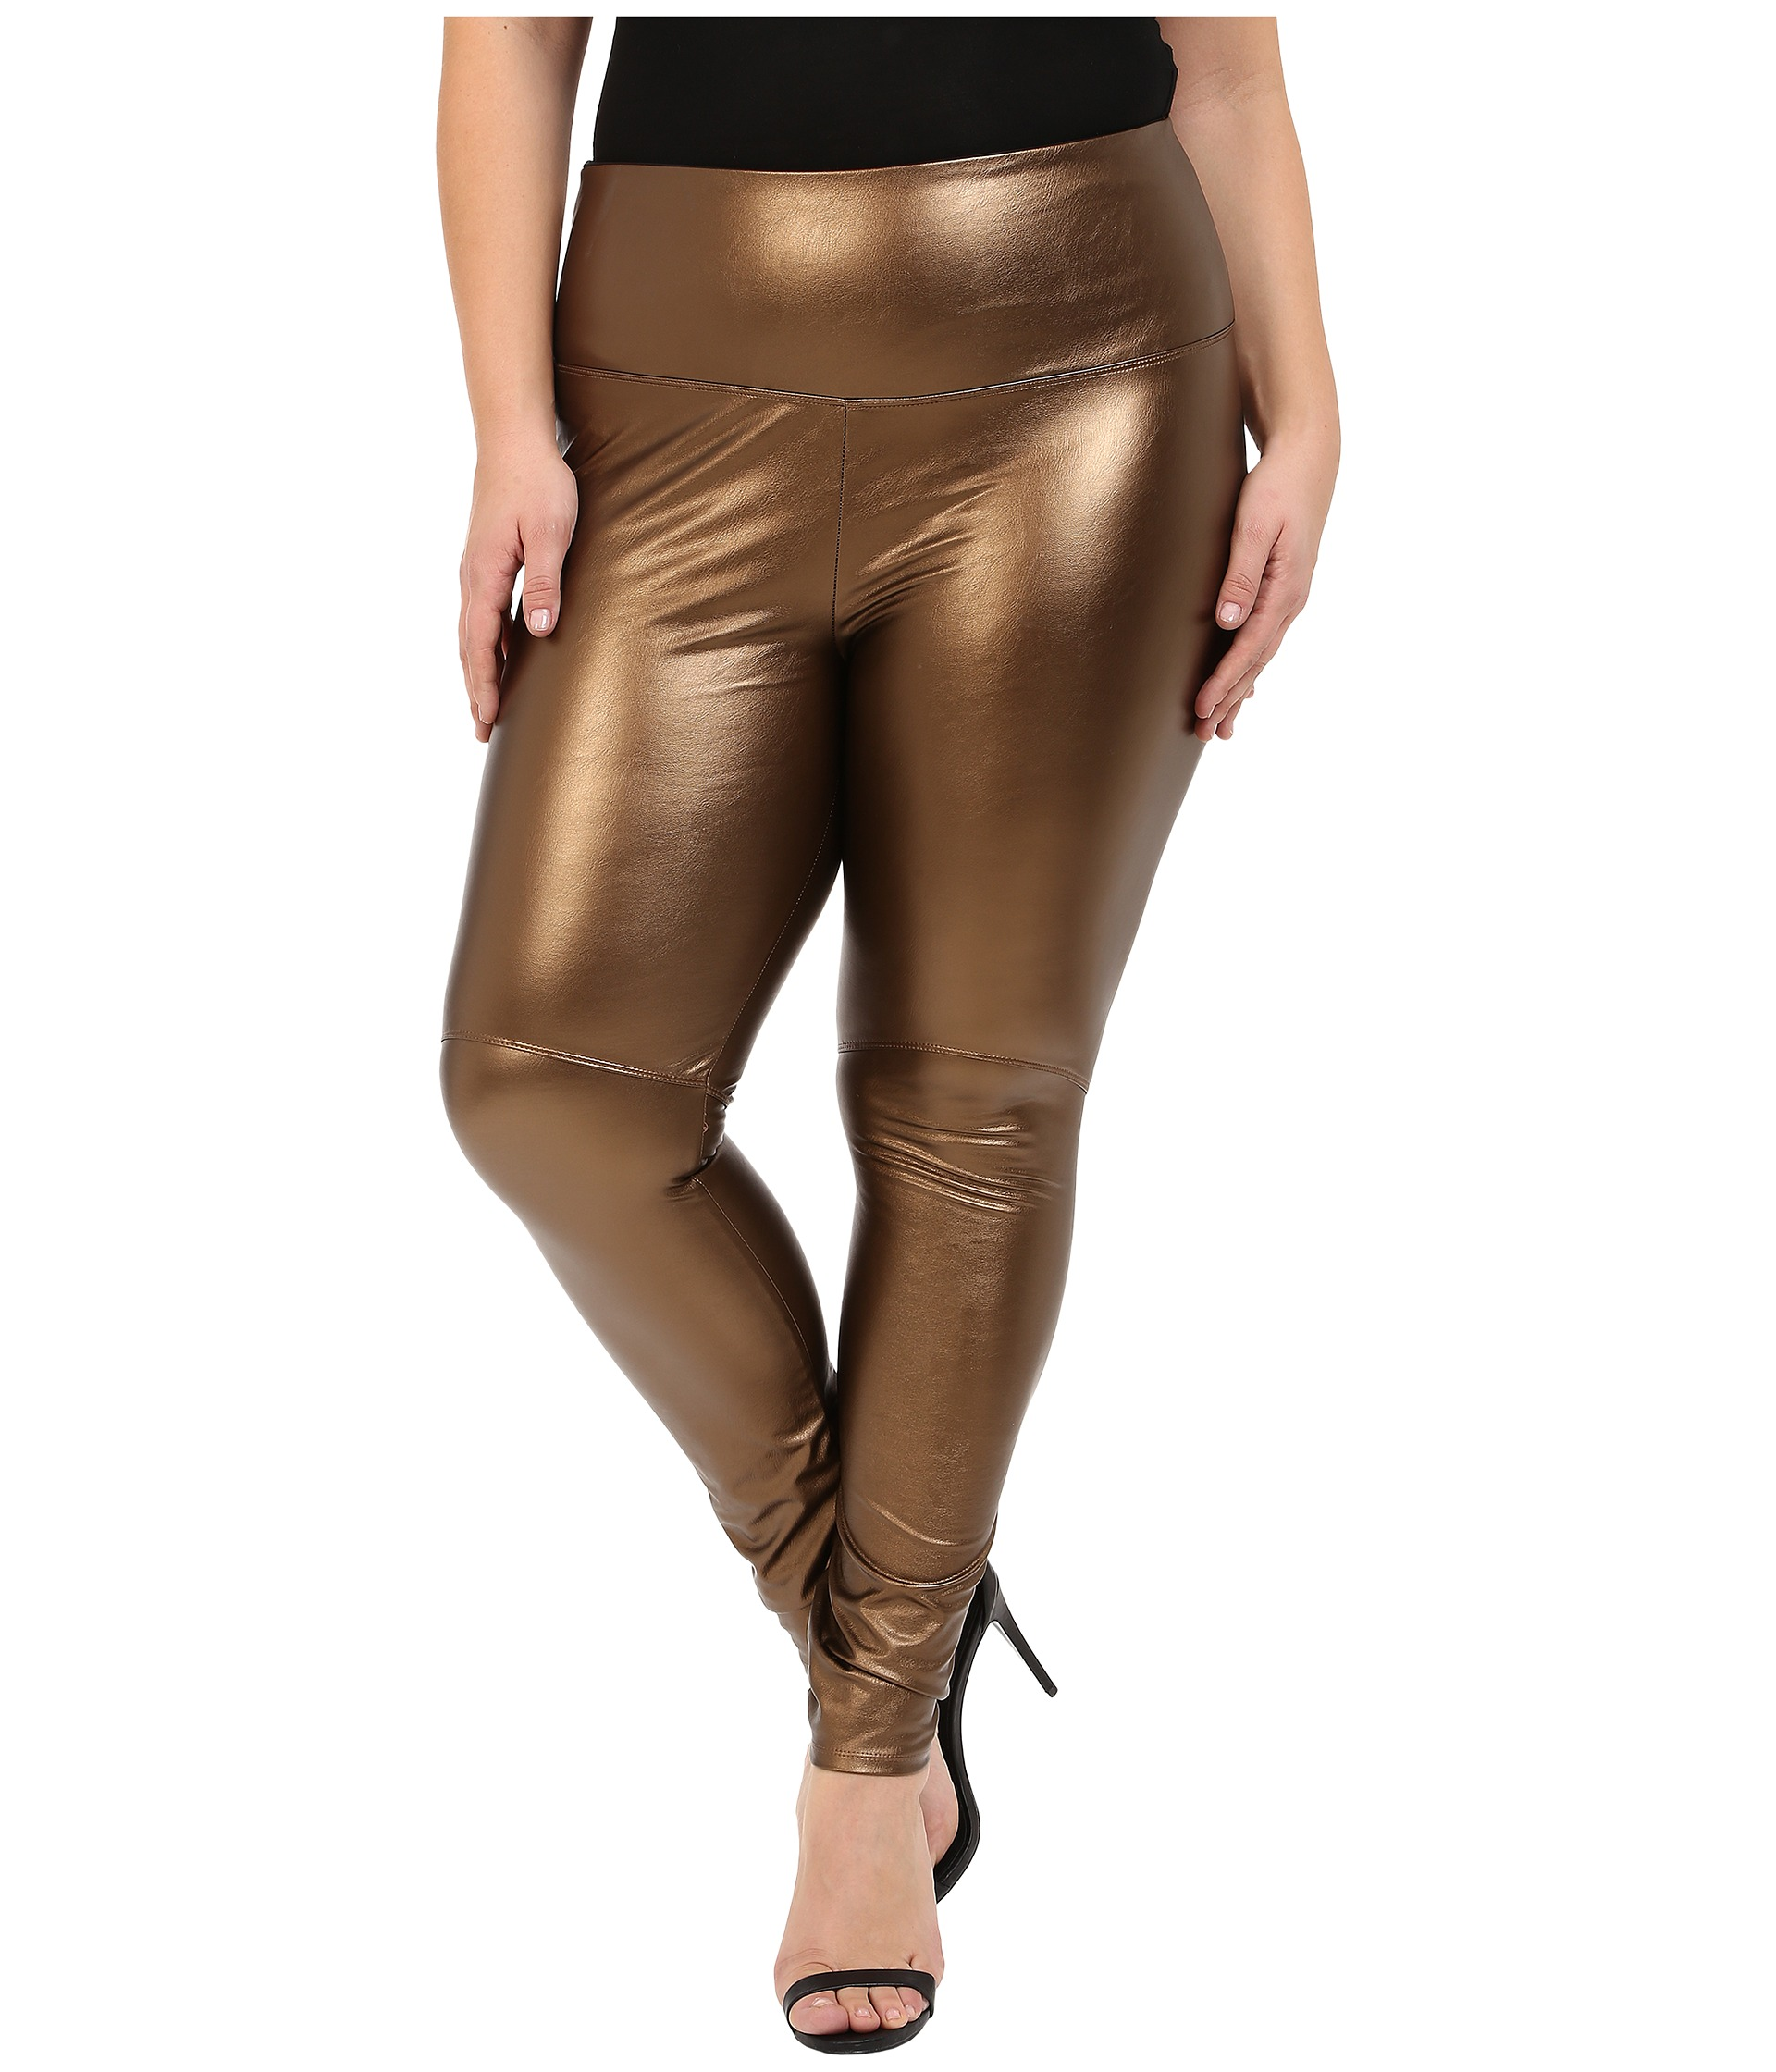 A stylish, edgy legging that will make you look and feel your best. Vegan faux leather legging boasts an element of stretch for comfort and flexibility. Banded waist lining .